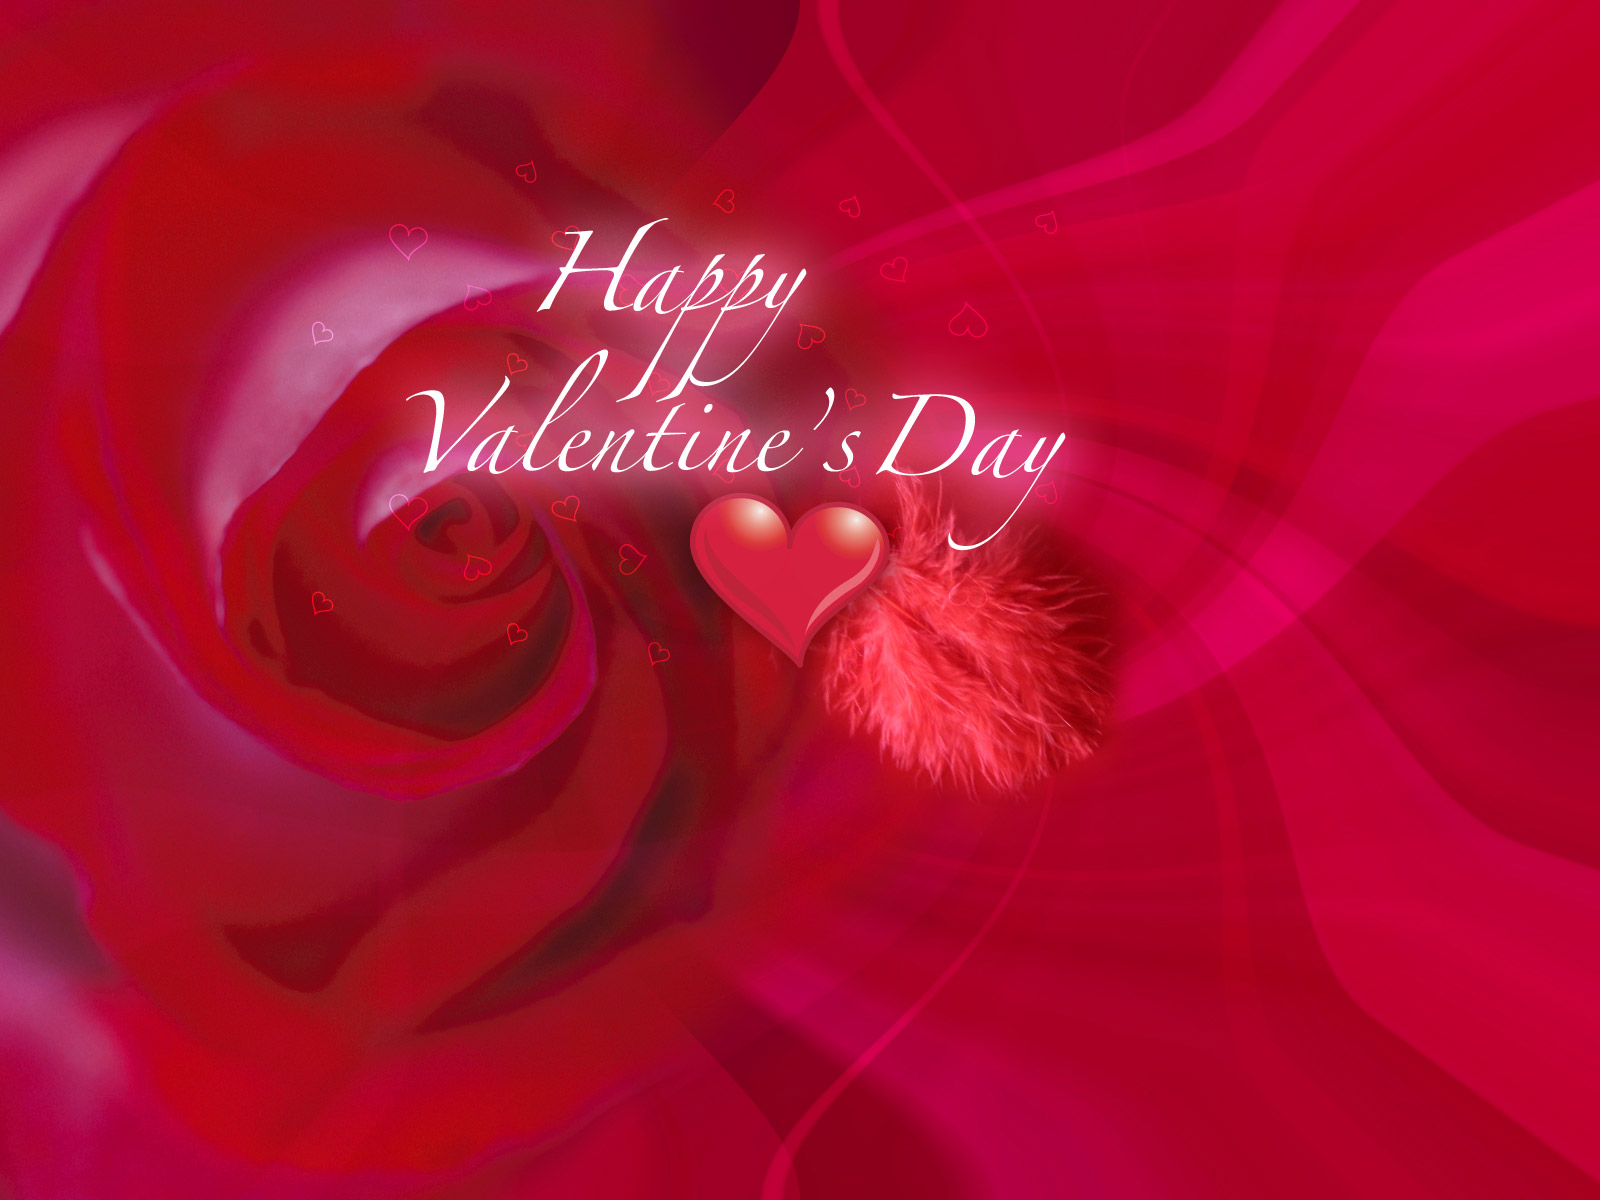 http://4.bp.blogspot.com/-99Ijtl3uxoE/Twn7mIB4WUI/AAAAAAAARVU/sEI-tTZZgrQ/s1600/The-best-top-desktop-valentines-day-wallpapers-15.jpg